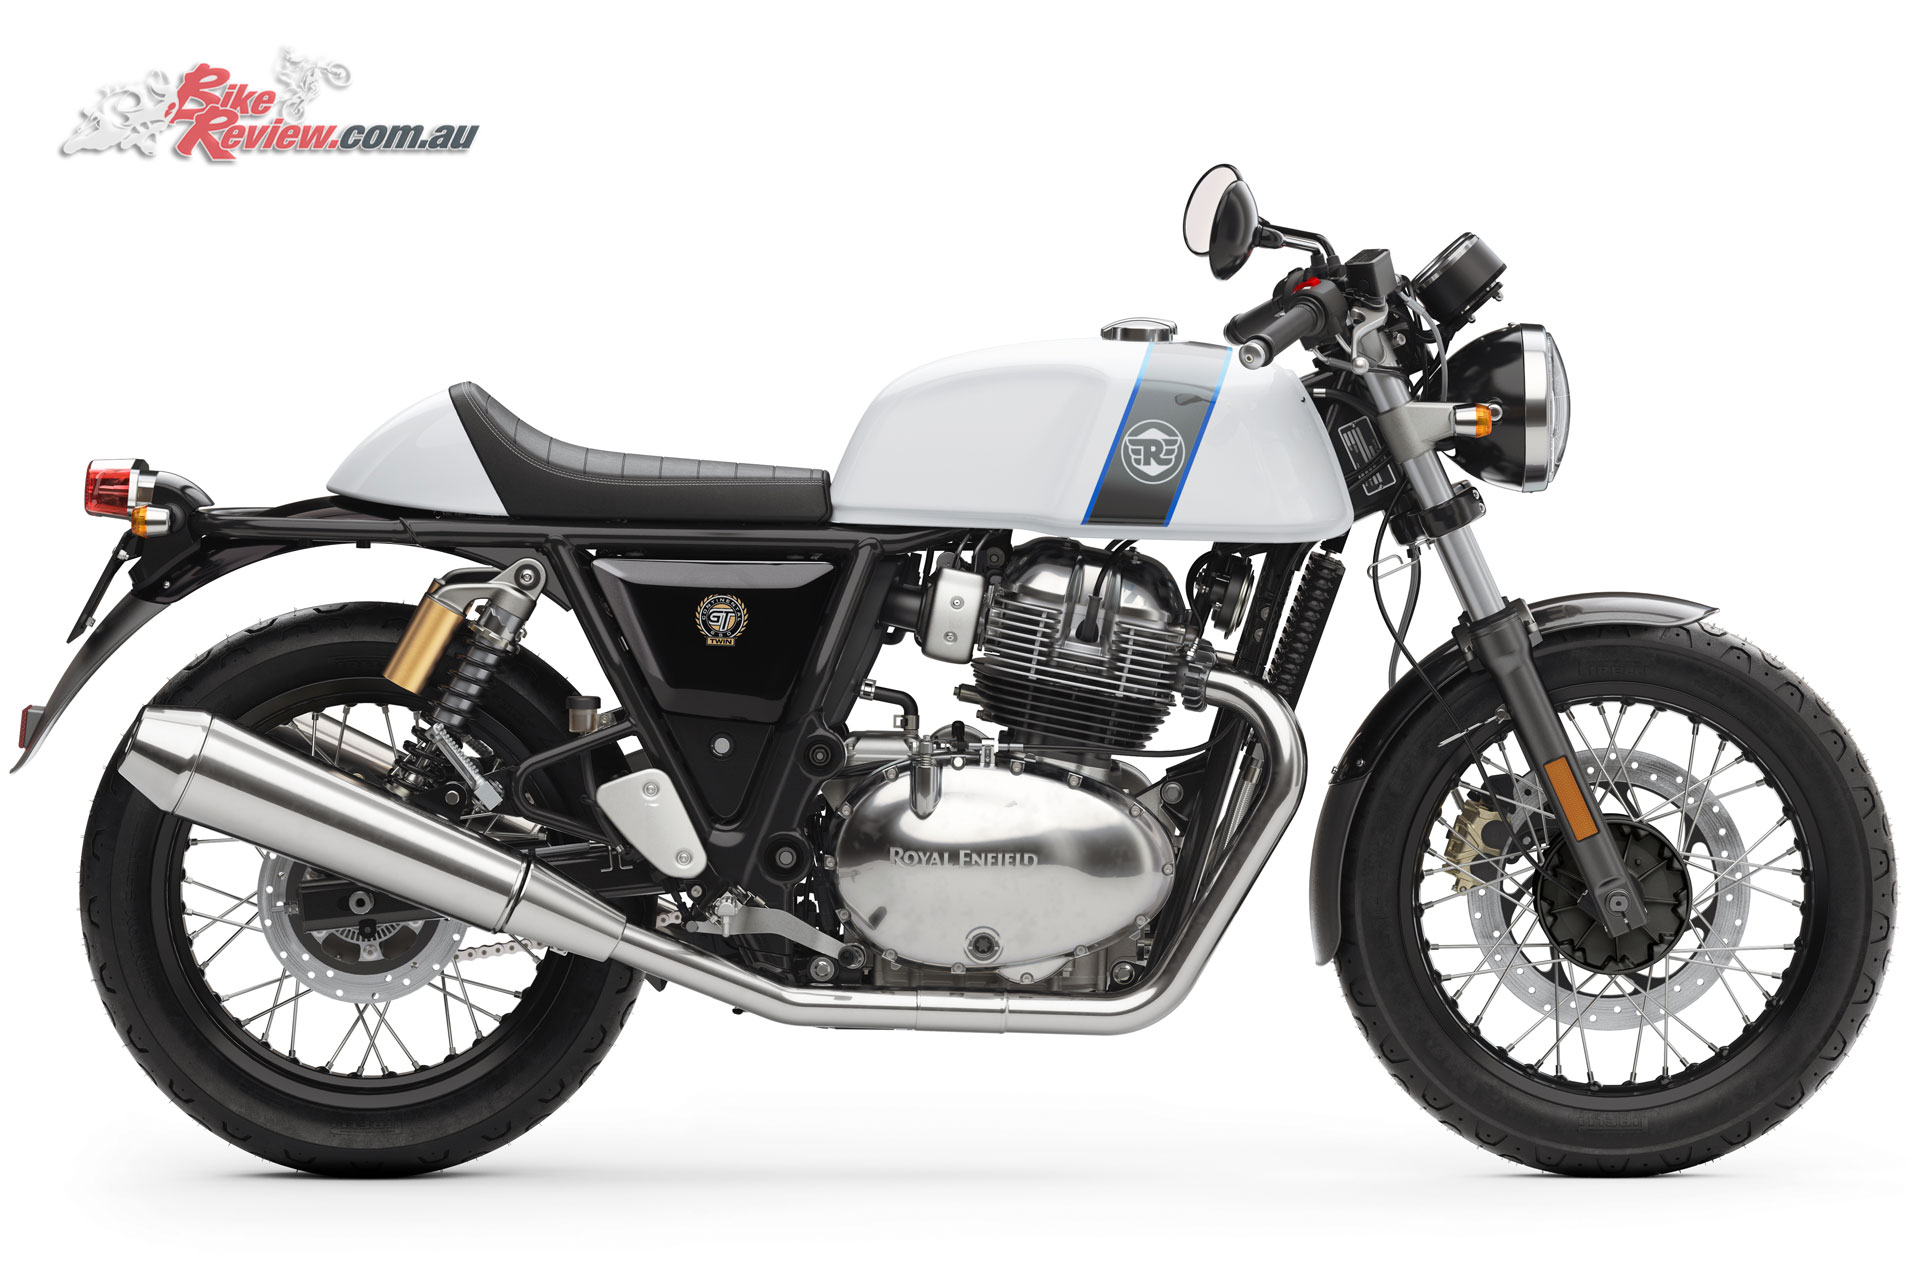 Royal Enfield unveil two new 650s at EICMA - Bike Review